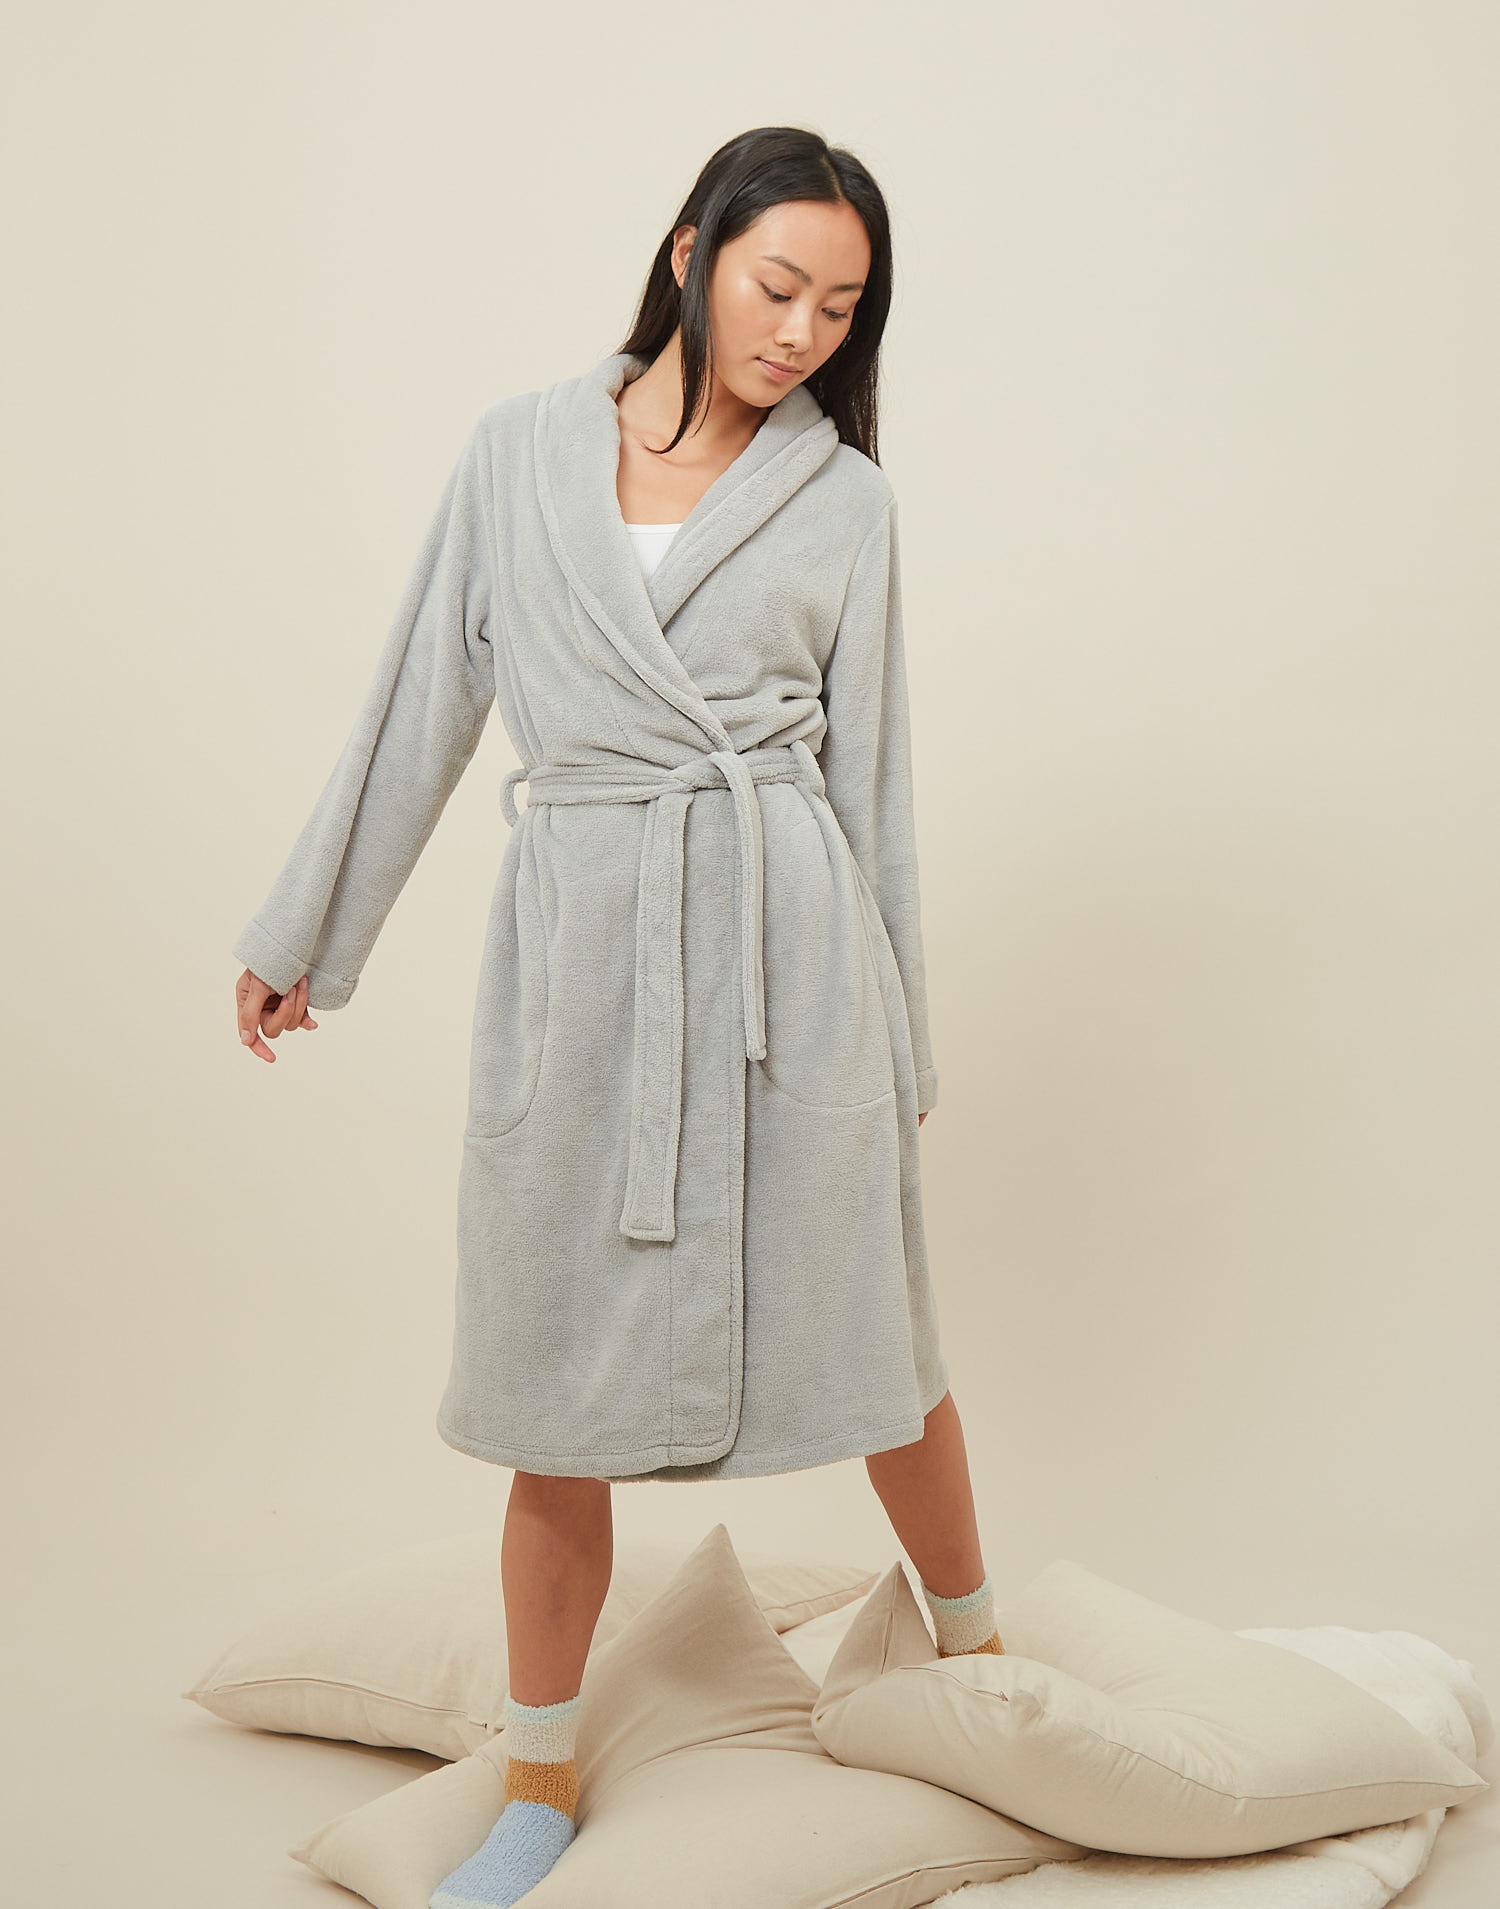 Unisex fleece dressing gown with piping